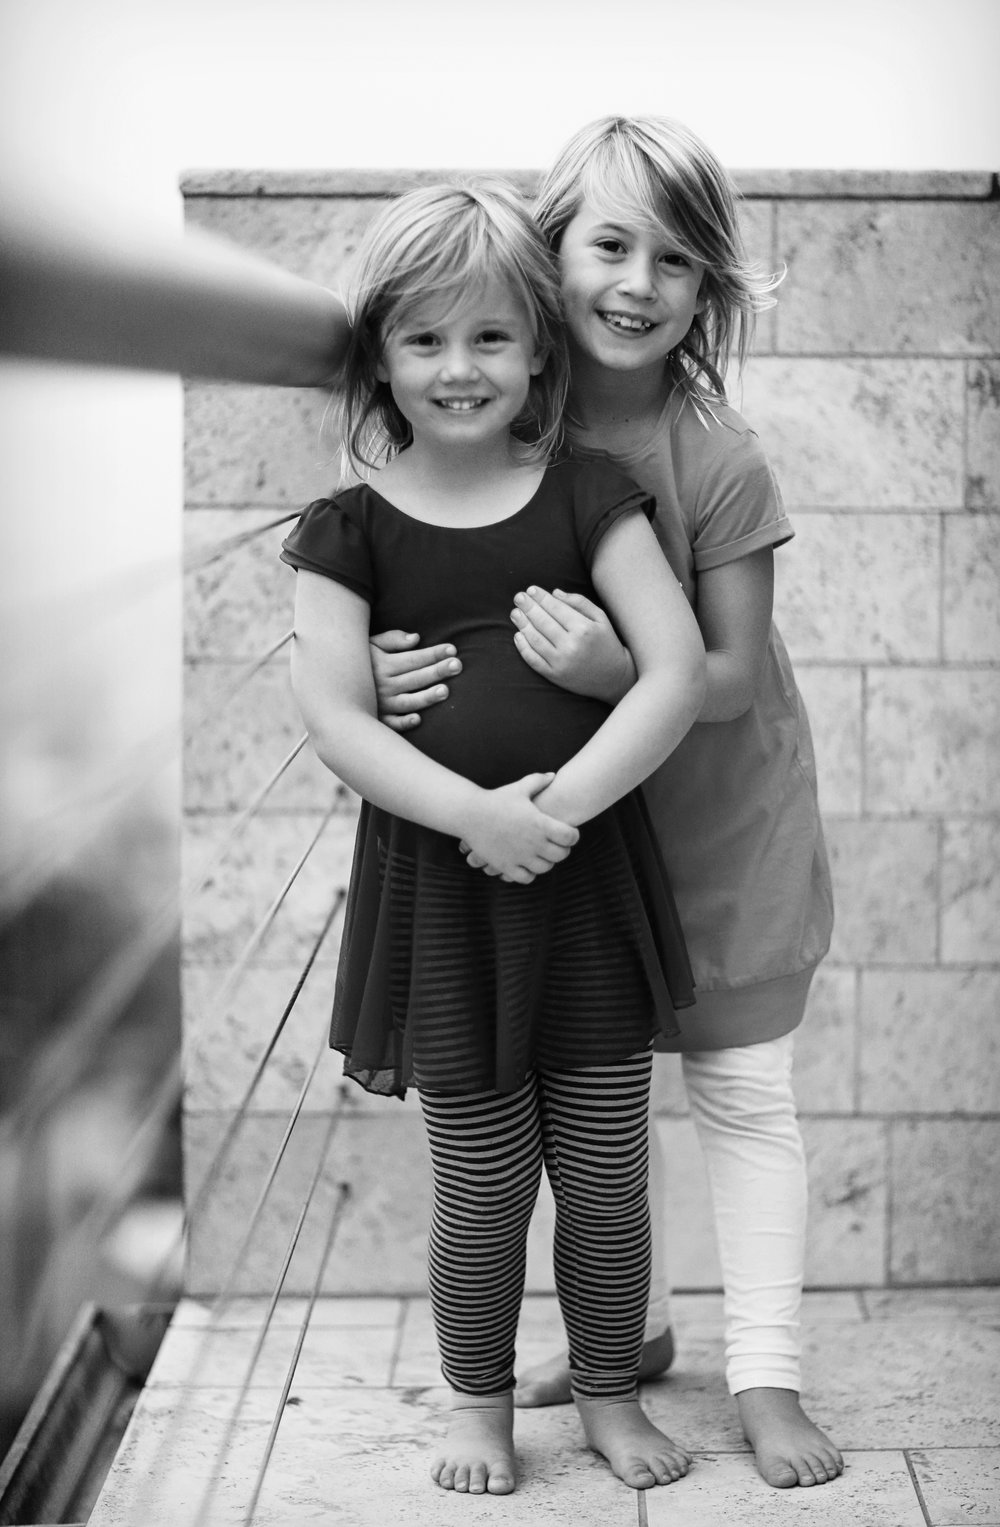 15. What inspires you? It's so cliché but my kids. They are truly hilarious little humans. -